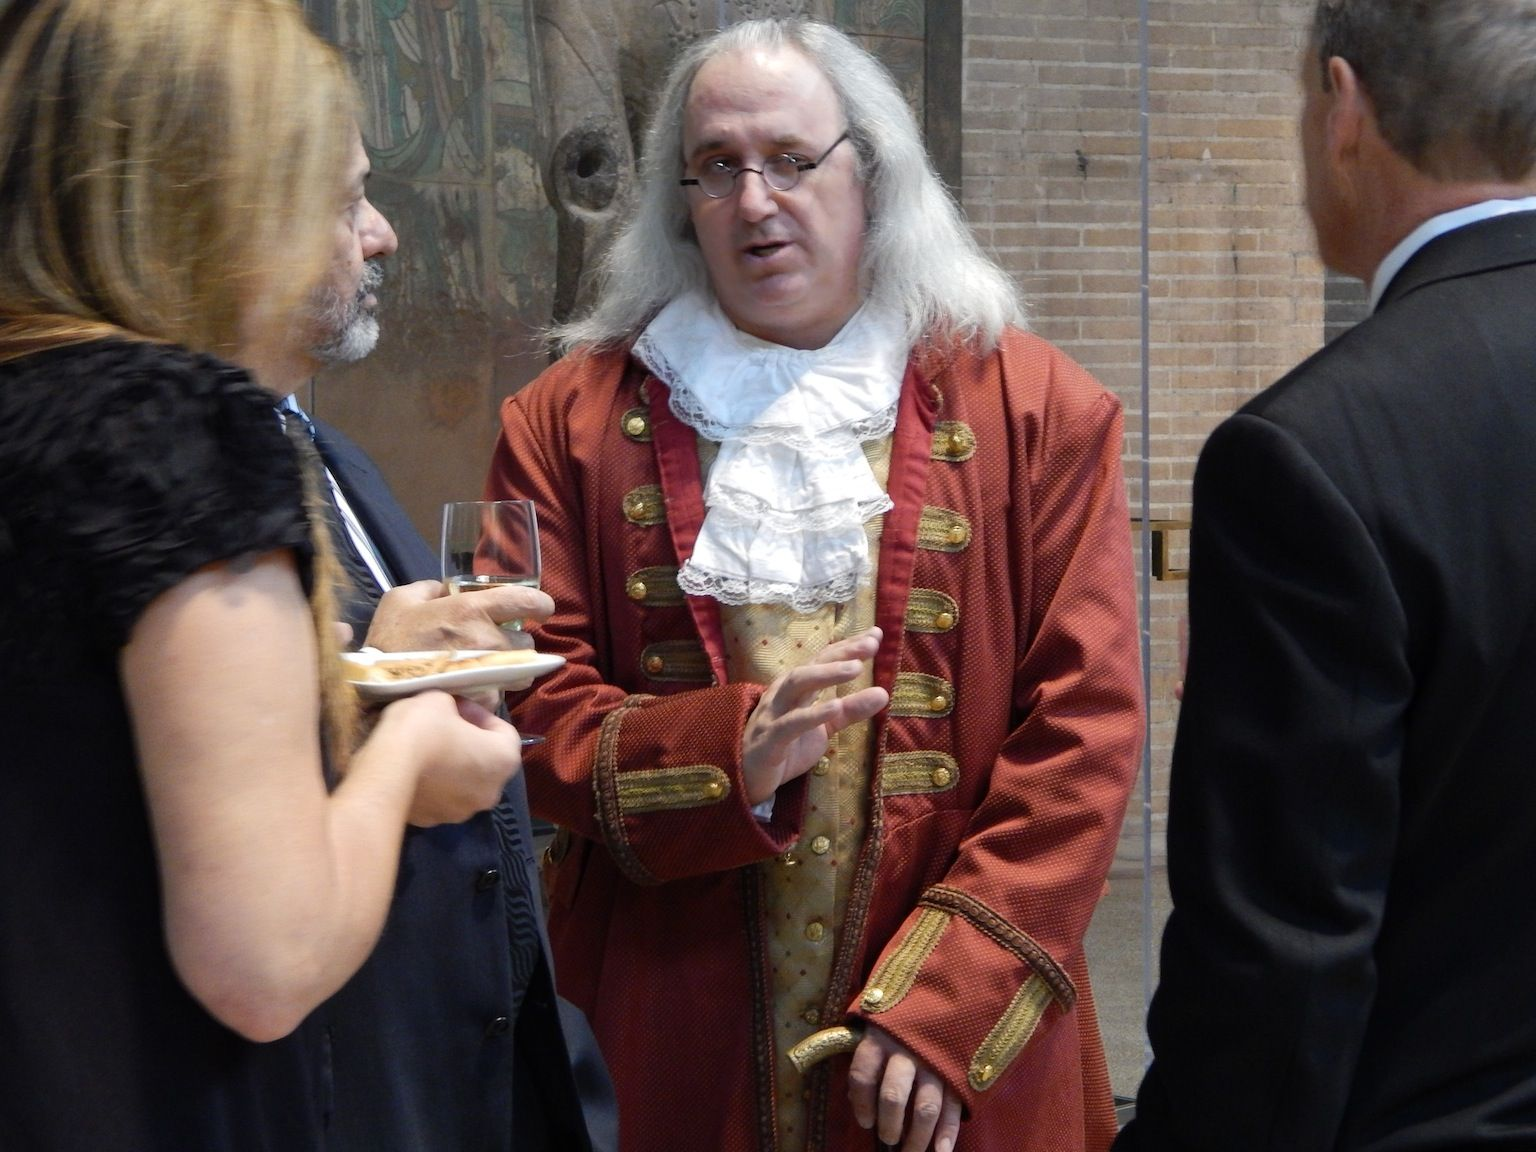 Springtime is a Big, Busy Time for The Young and Witty Ben Franklin